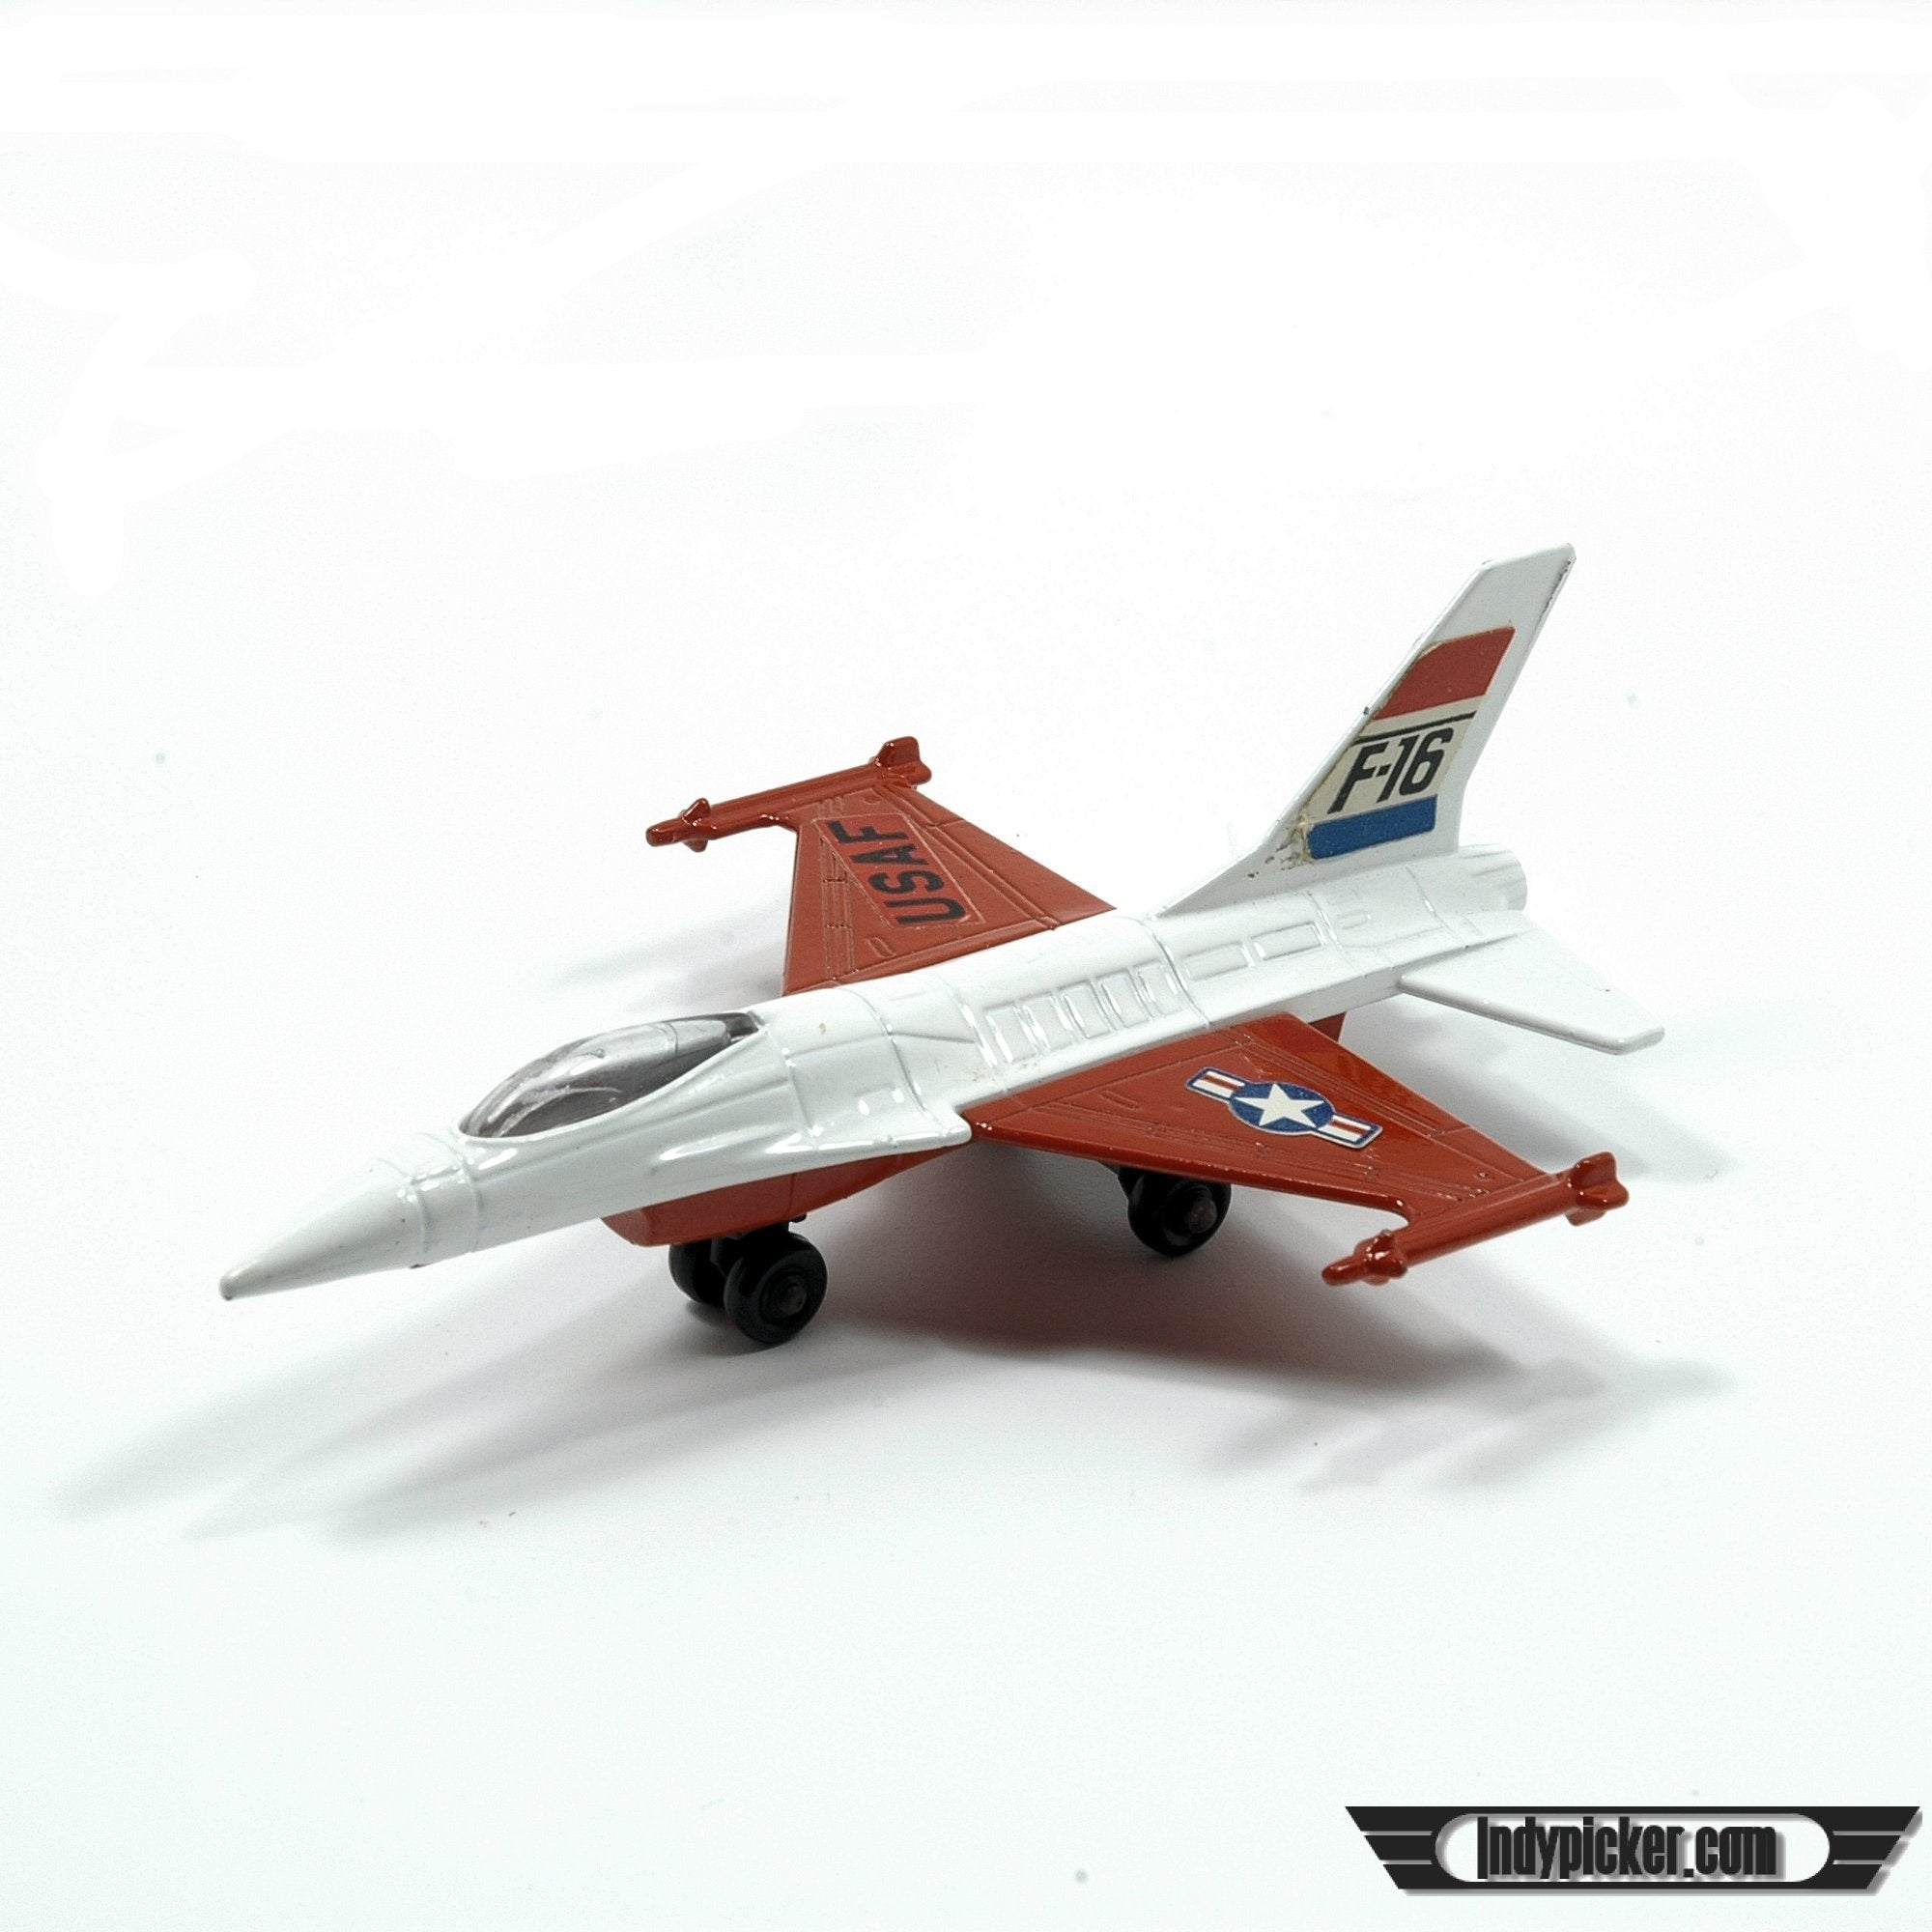 Vintage  Matchbox Diecast Airplane Skybuster 24 F16 Jet Fighter (c.1978)